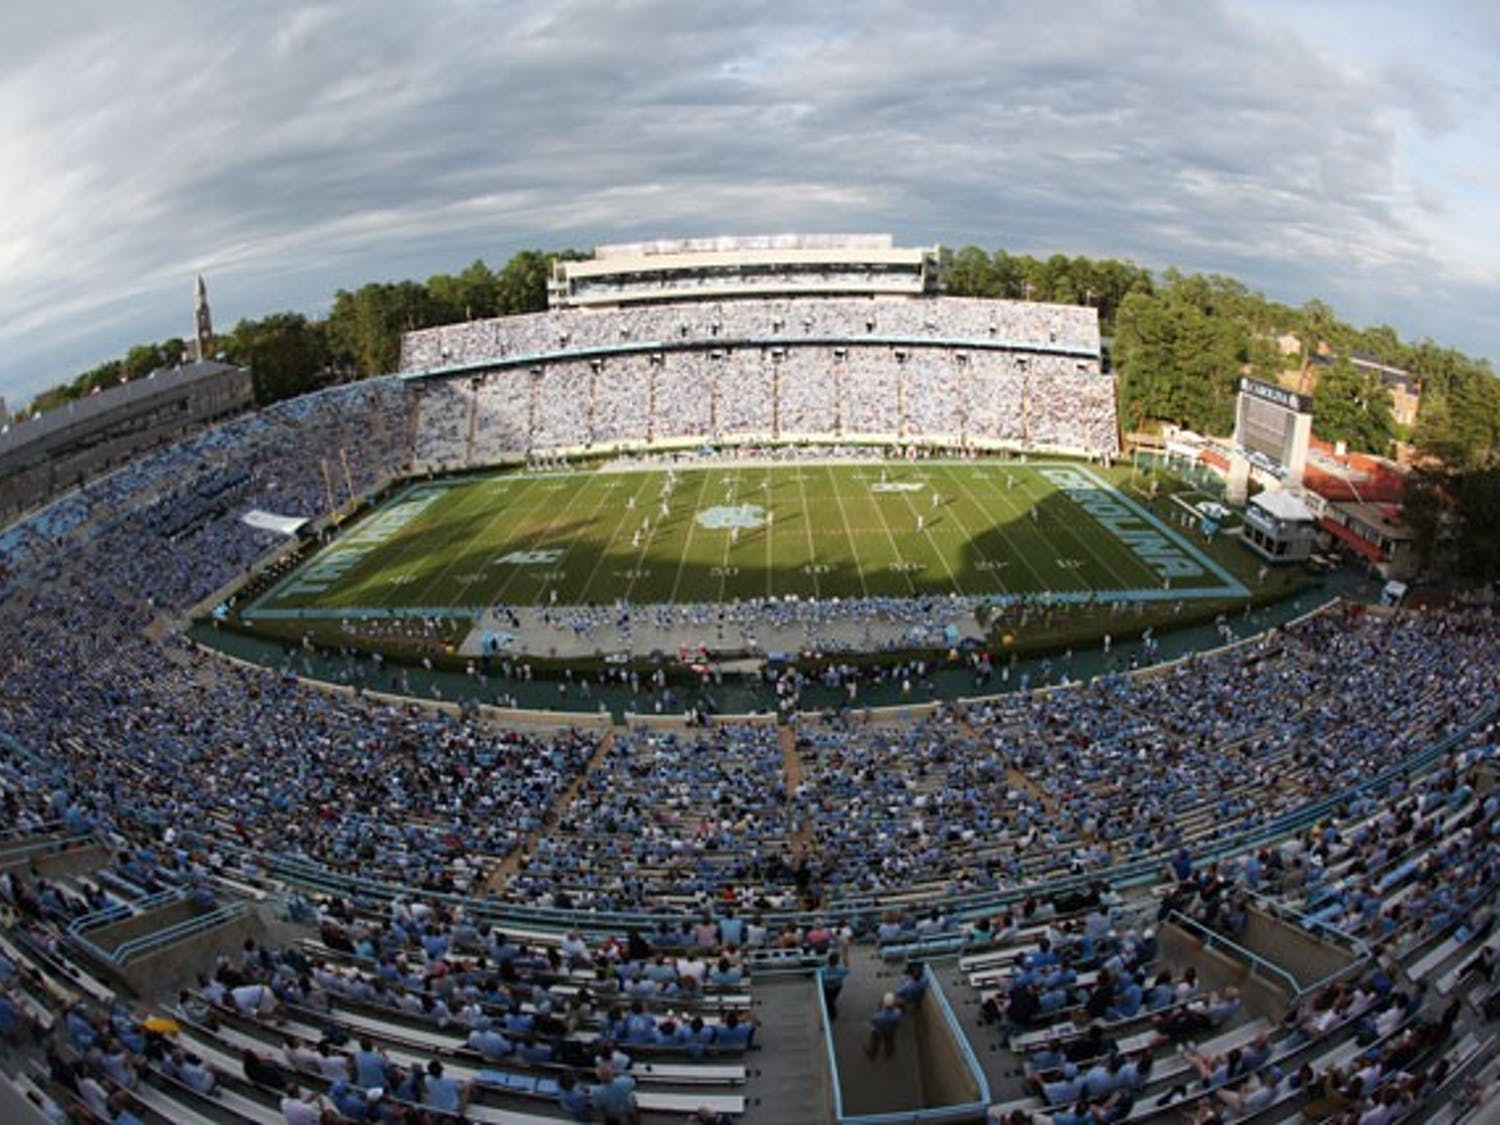 North Carolina takes on Florida State Thursday in the first Thursday night home football game in school history. DTH/Andrew Dye